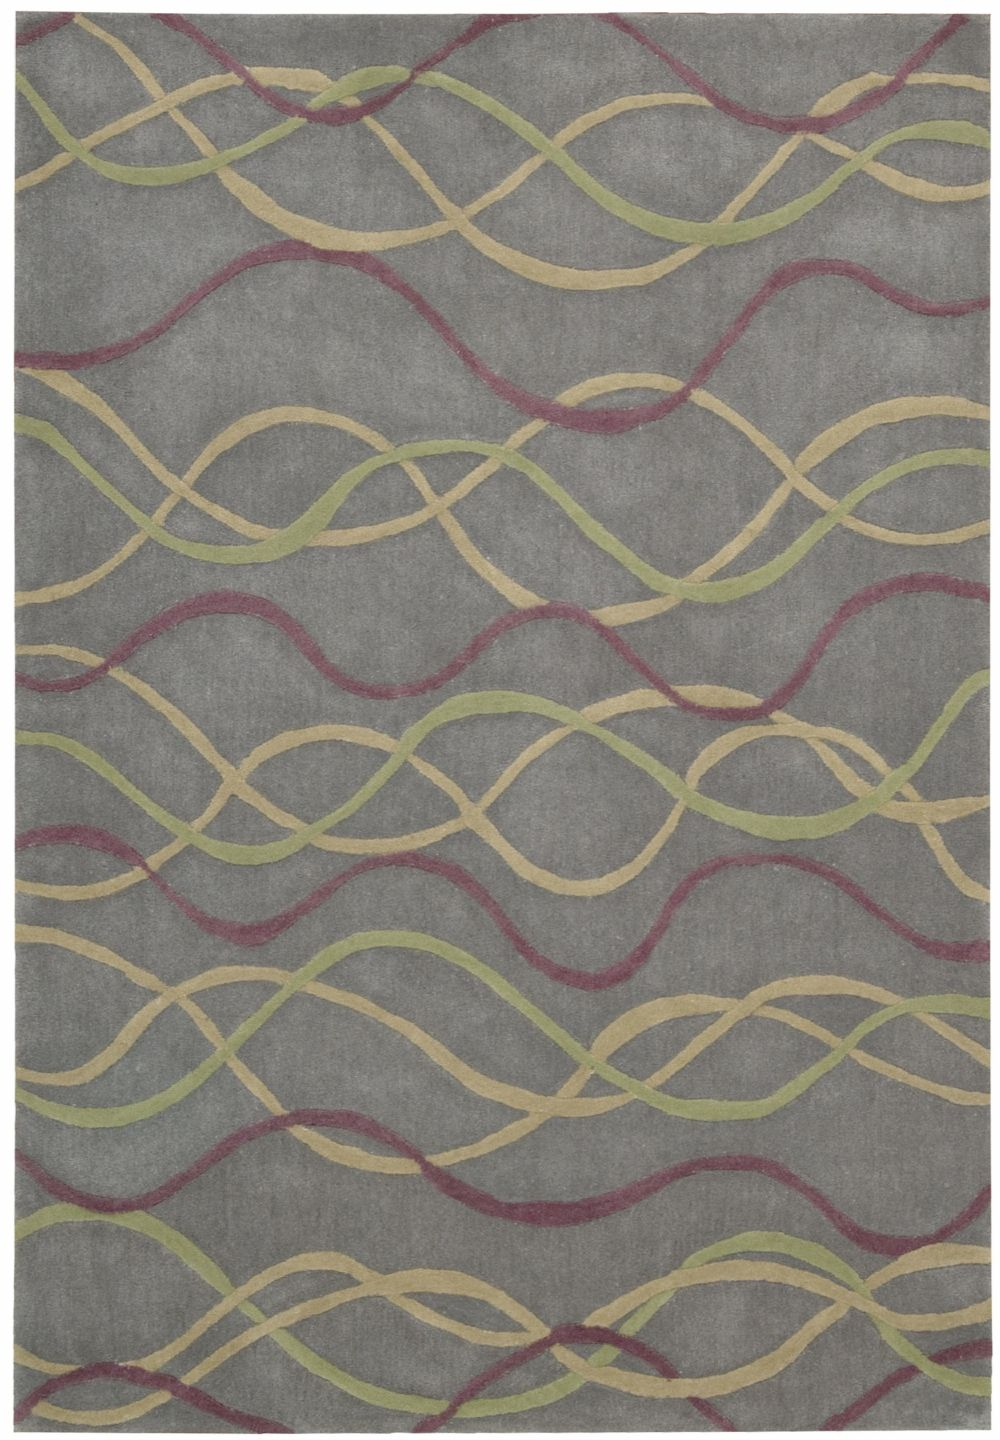 nourison citi limit contemporary area rug collection